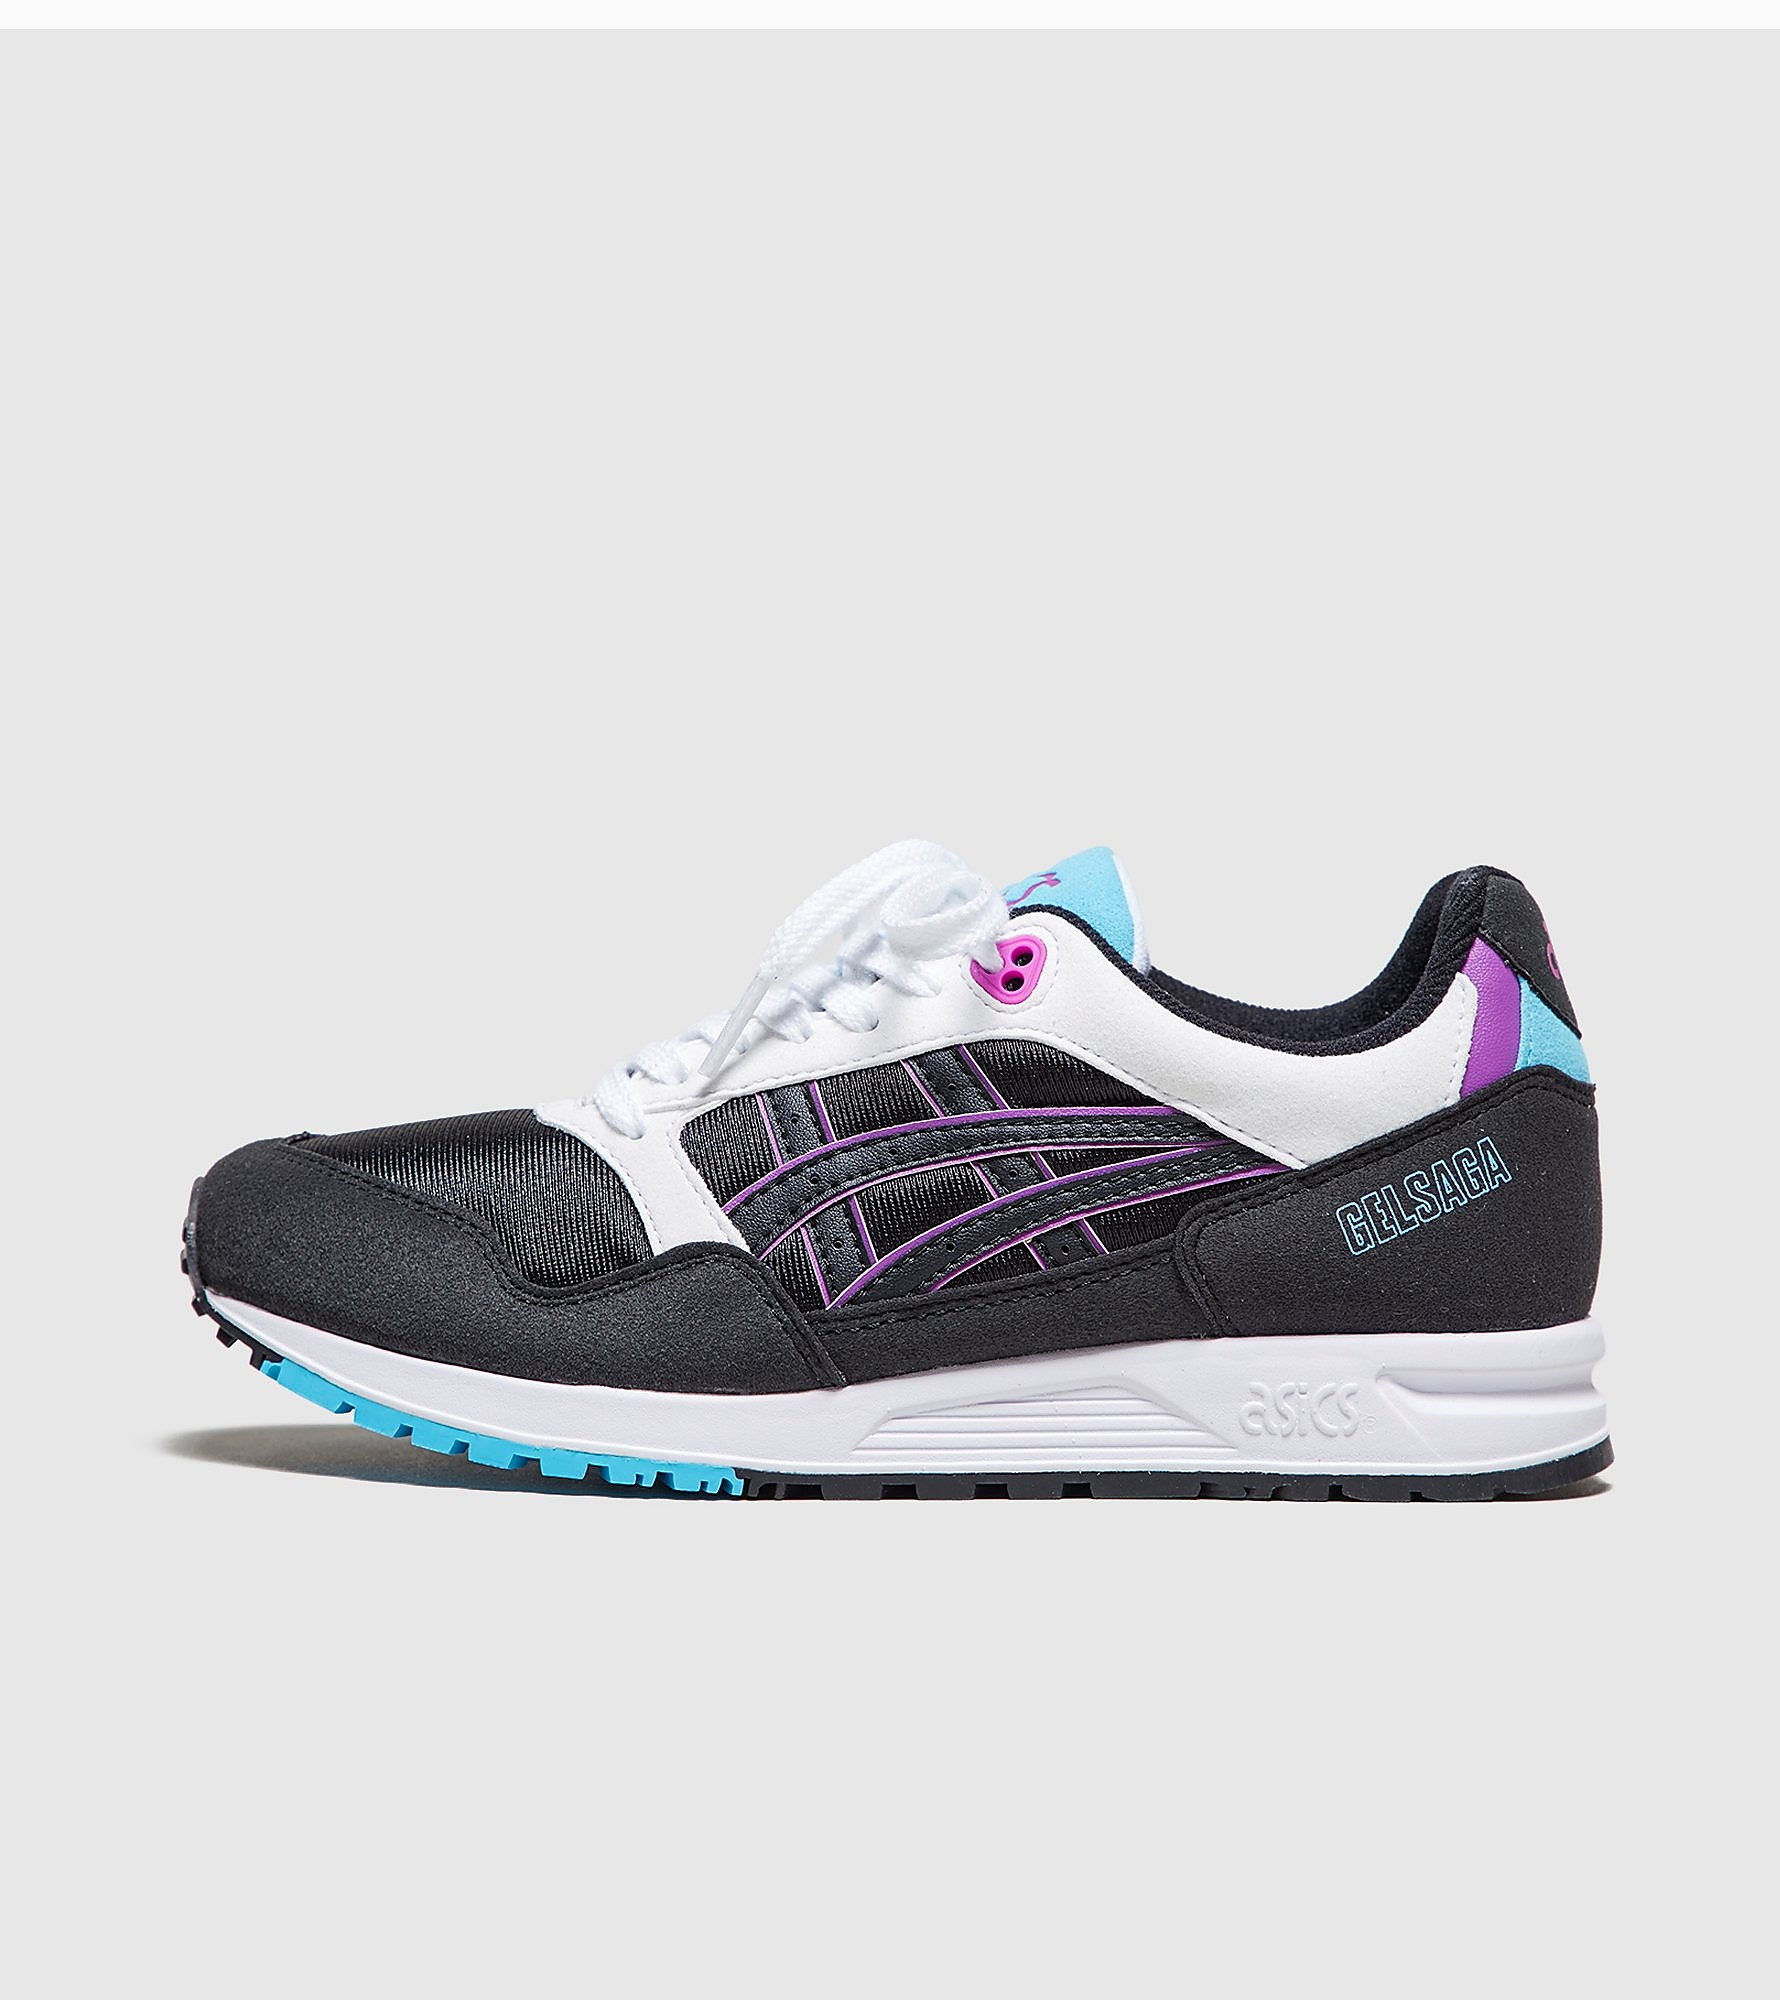 ASICS GEL-Saga Women's